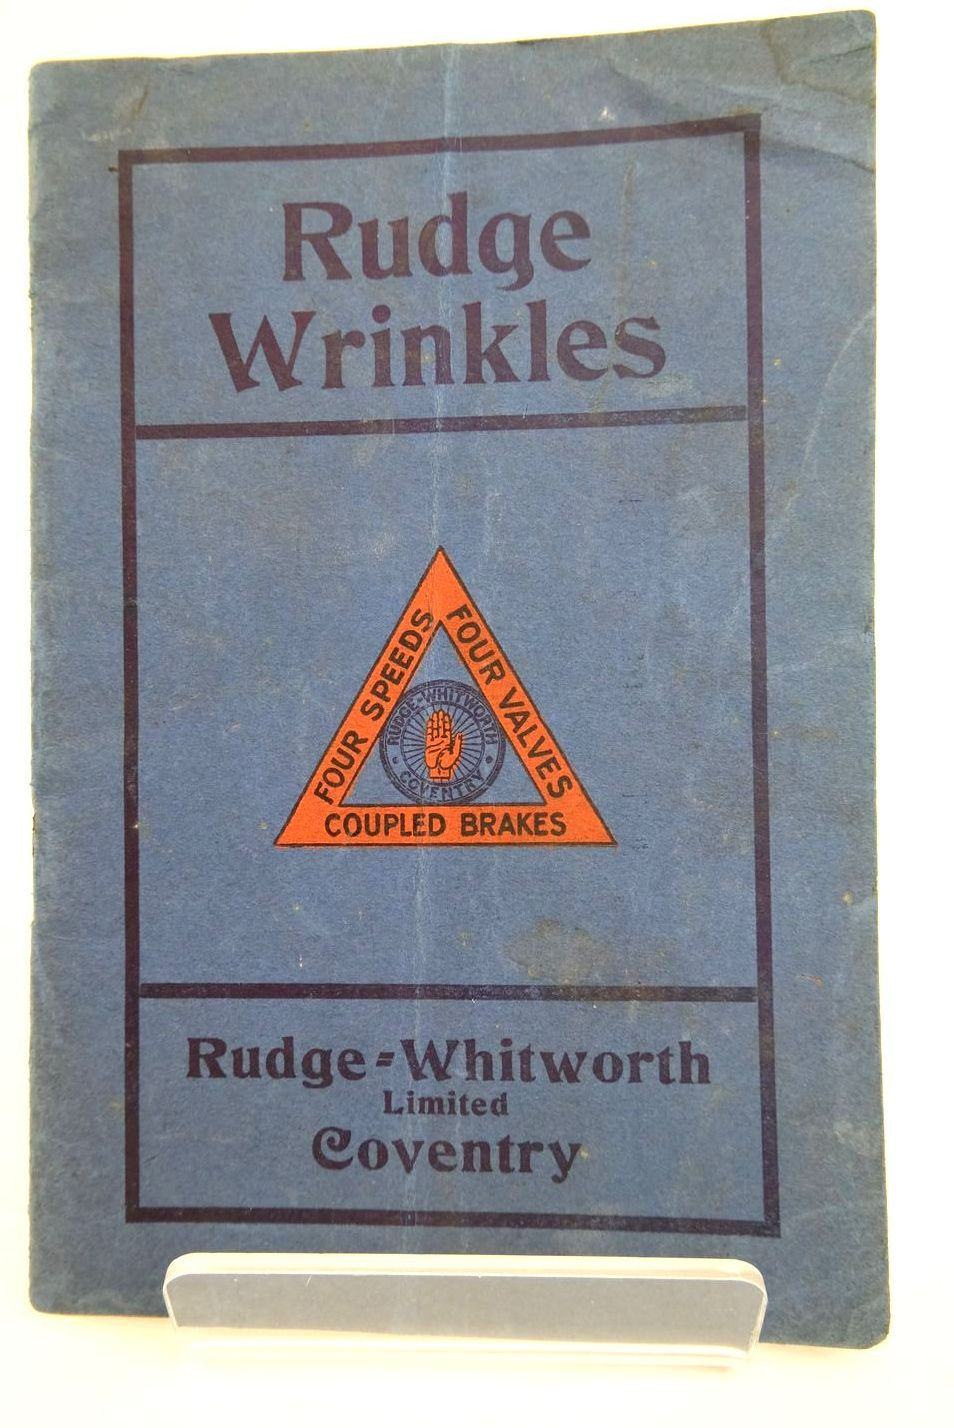 Photo of RUDGE WRINKLES published by Rudge-Whitworth Ltd. (STOCK CODE: 2133194)  for sale by Stella & Rose's Books